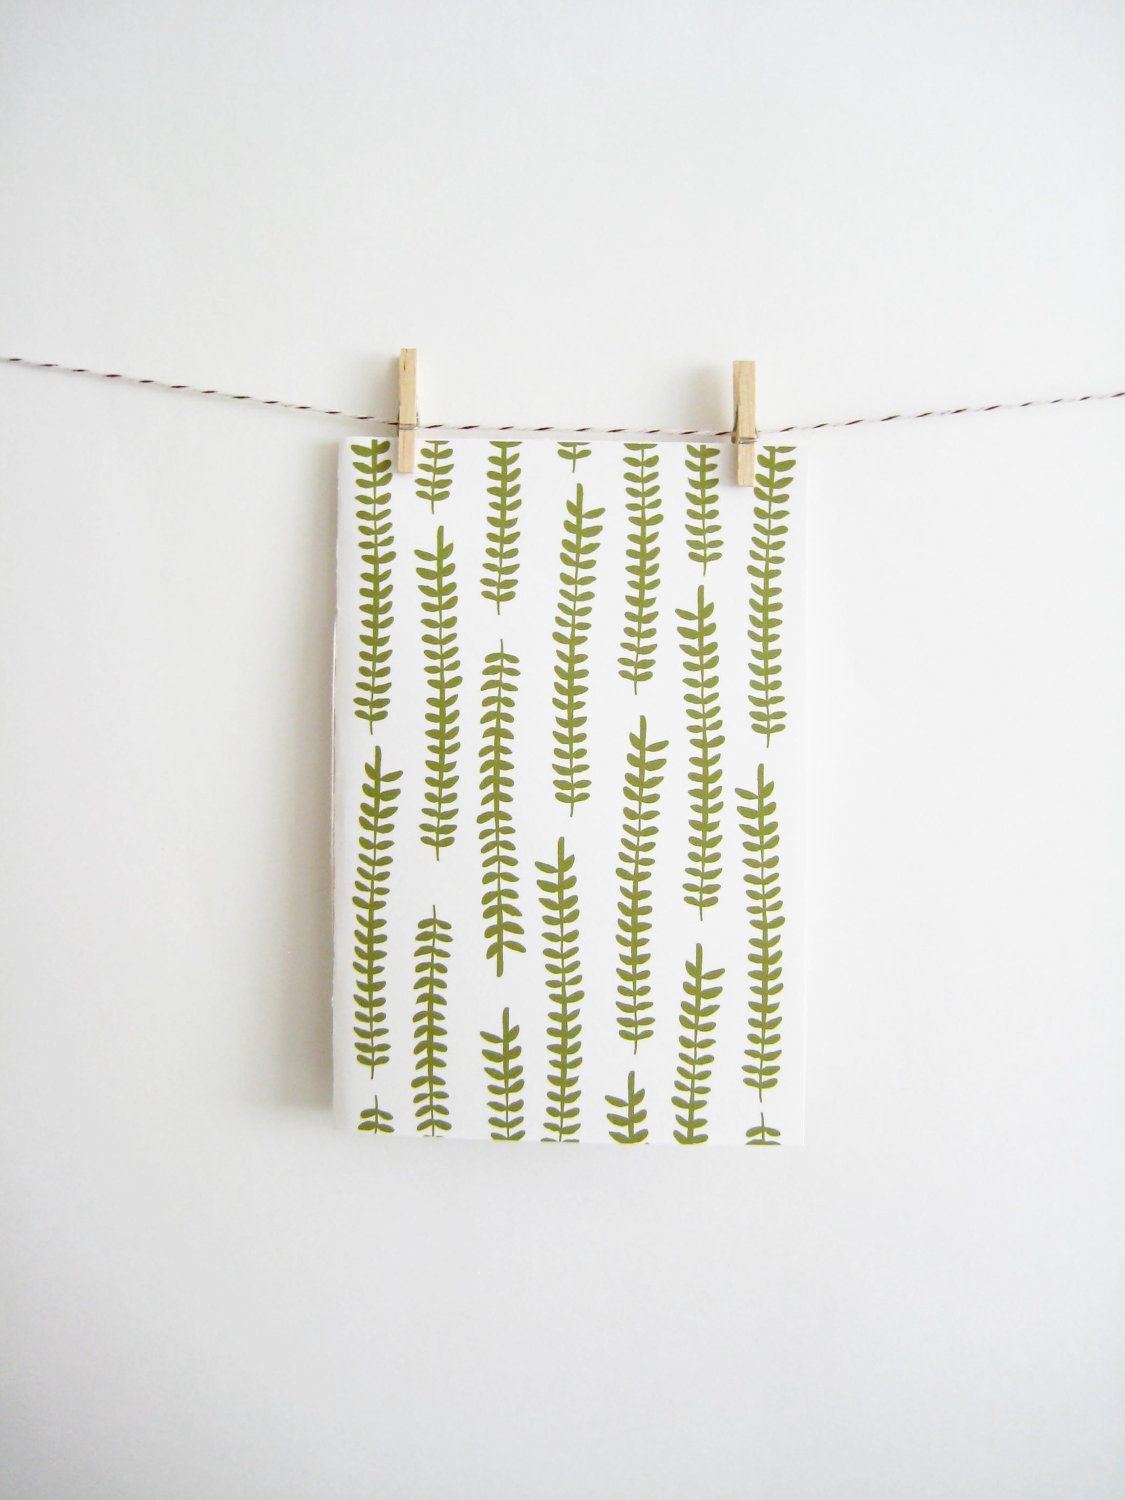 Patterned Notebook with Ferns